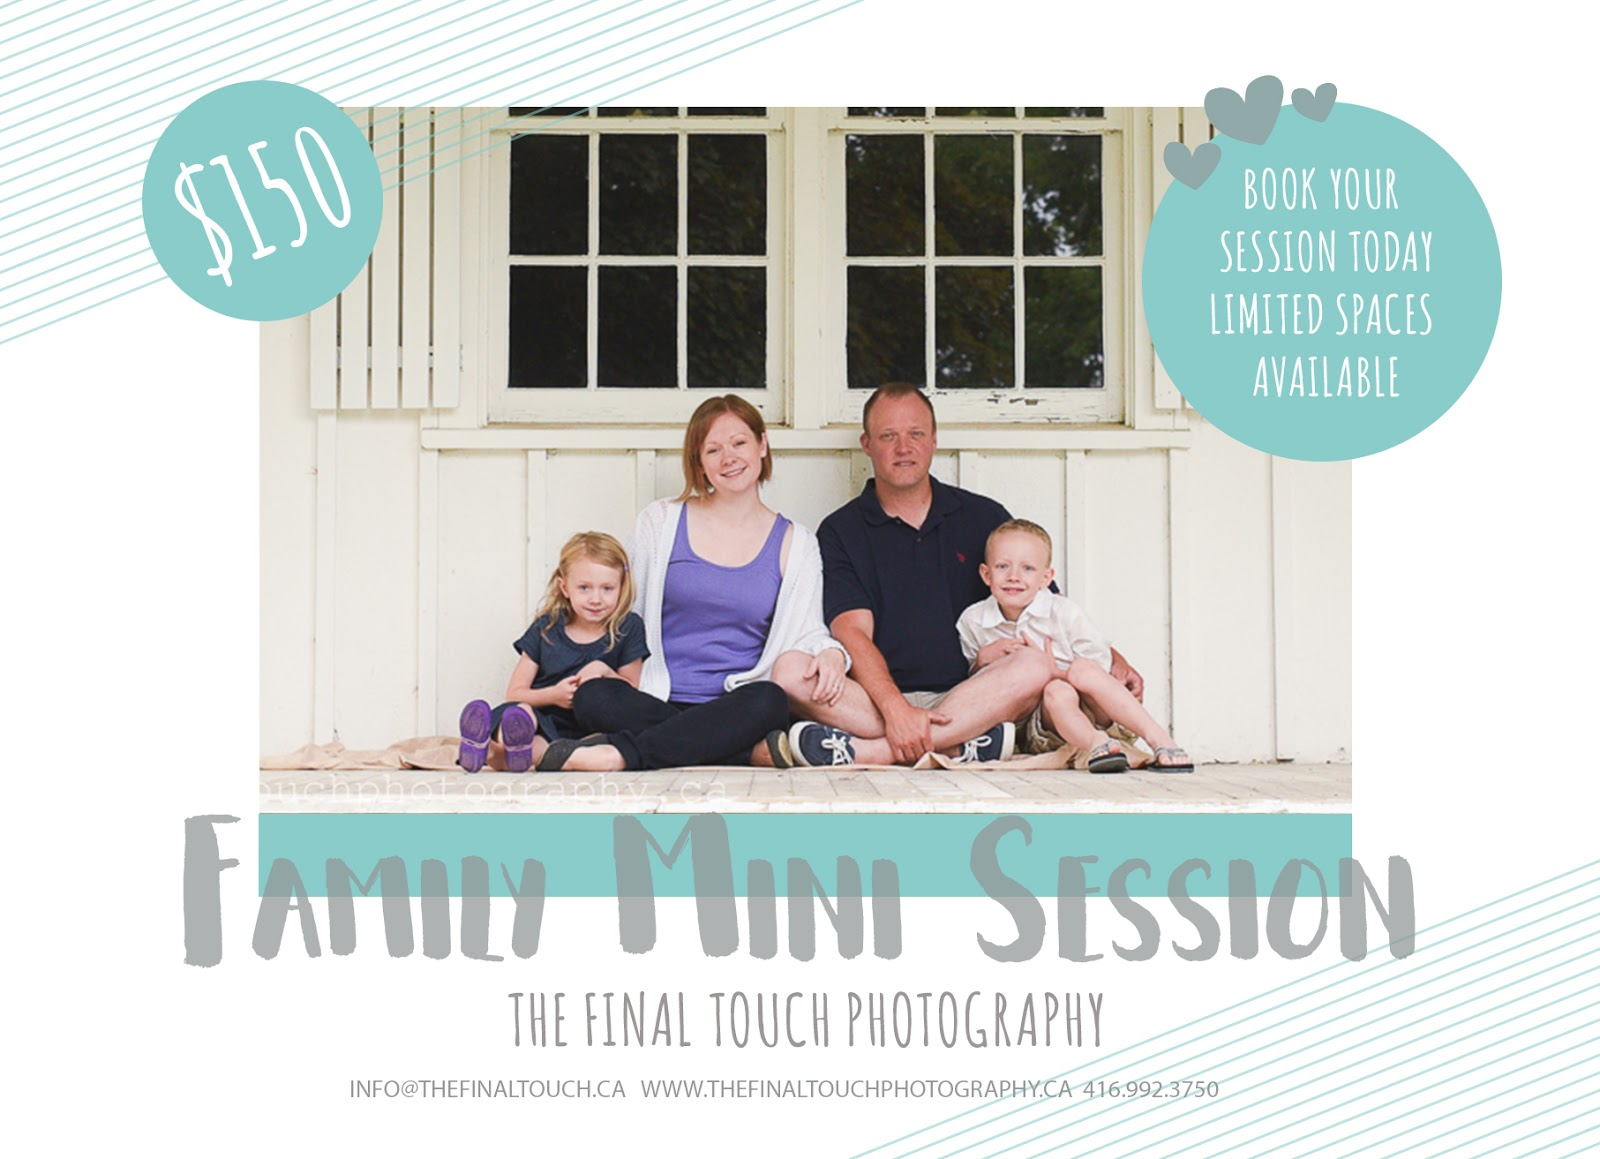 bolton family mini session